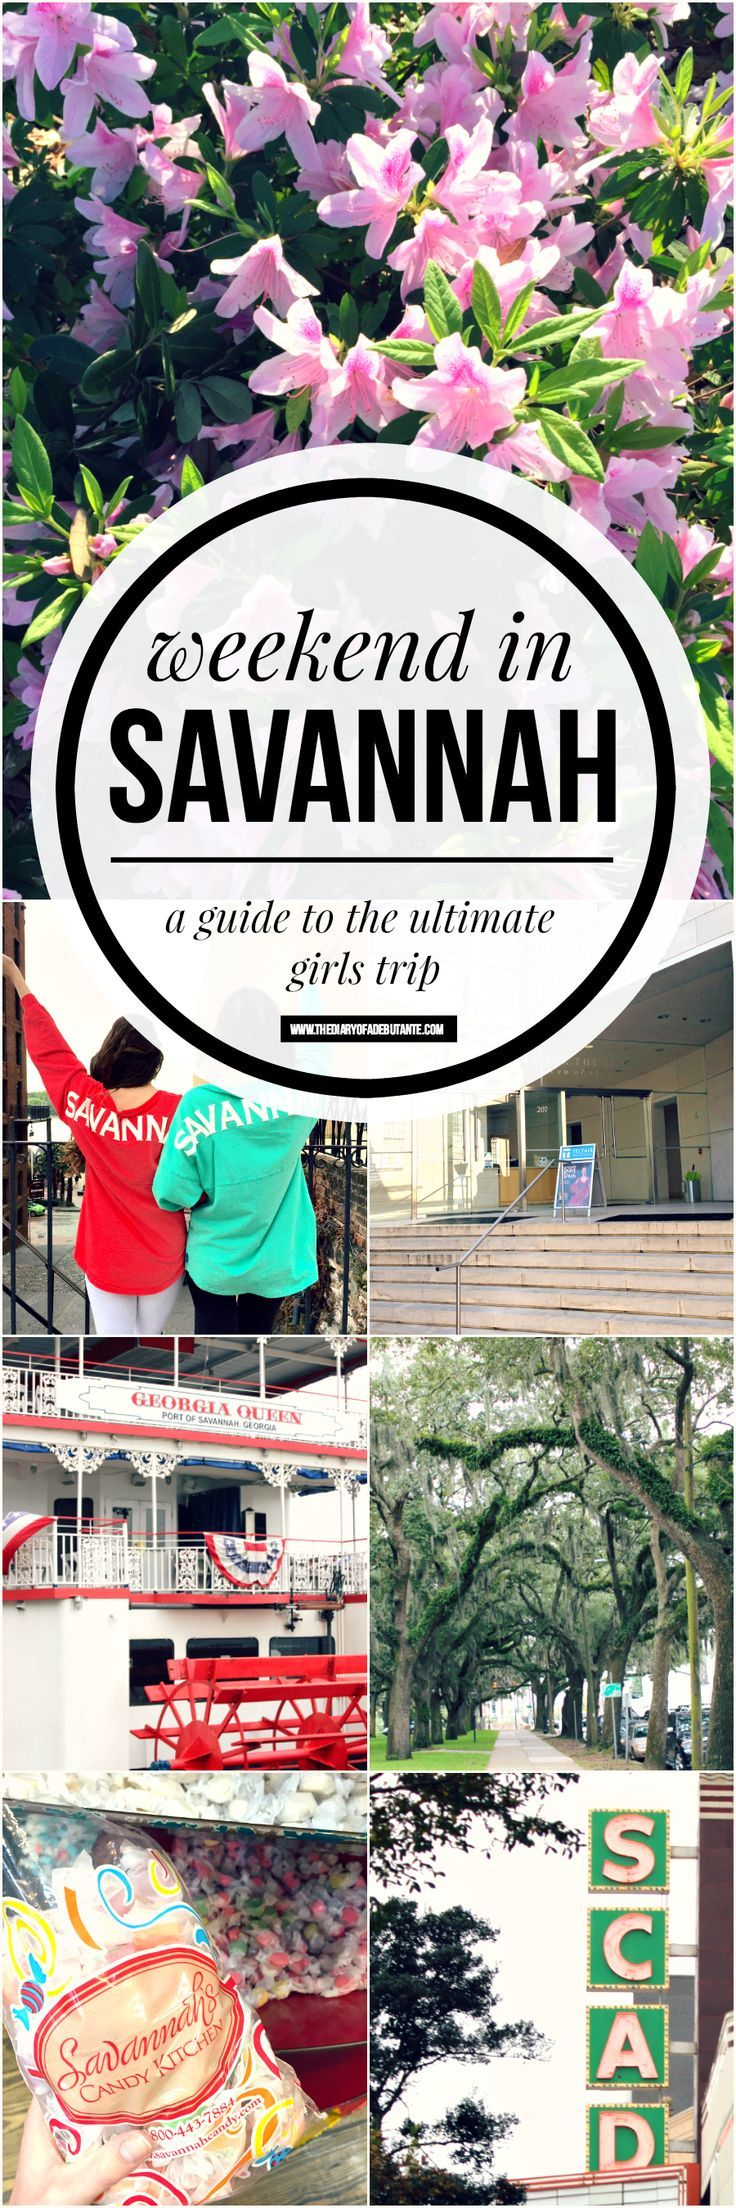 A travel guide to the ultimate girls weekend in Savannah, Georgia